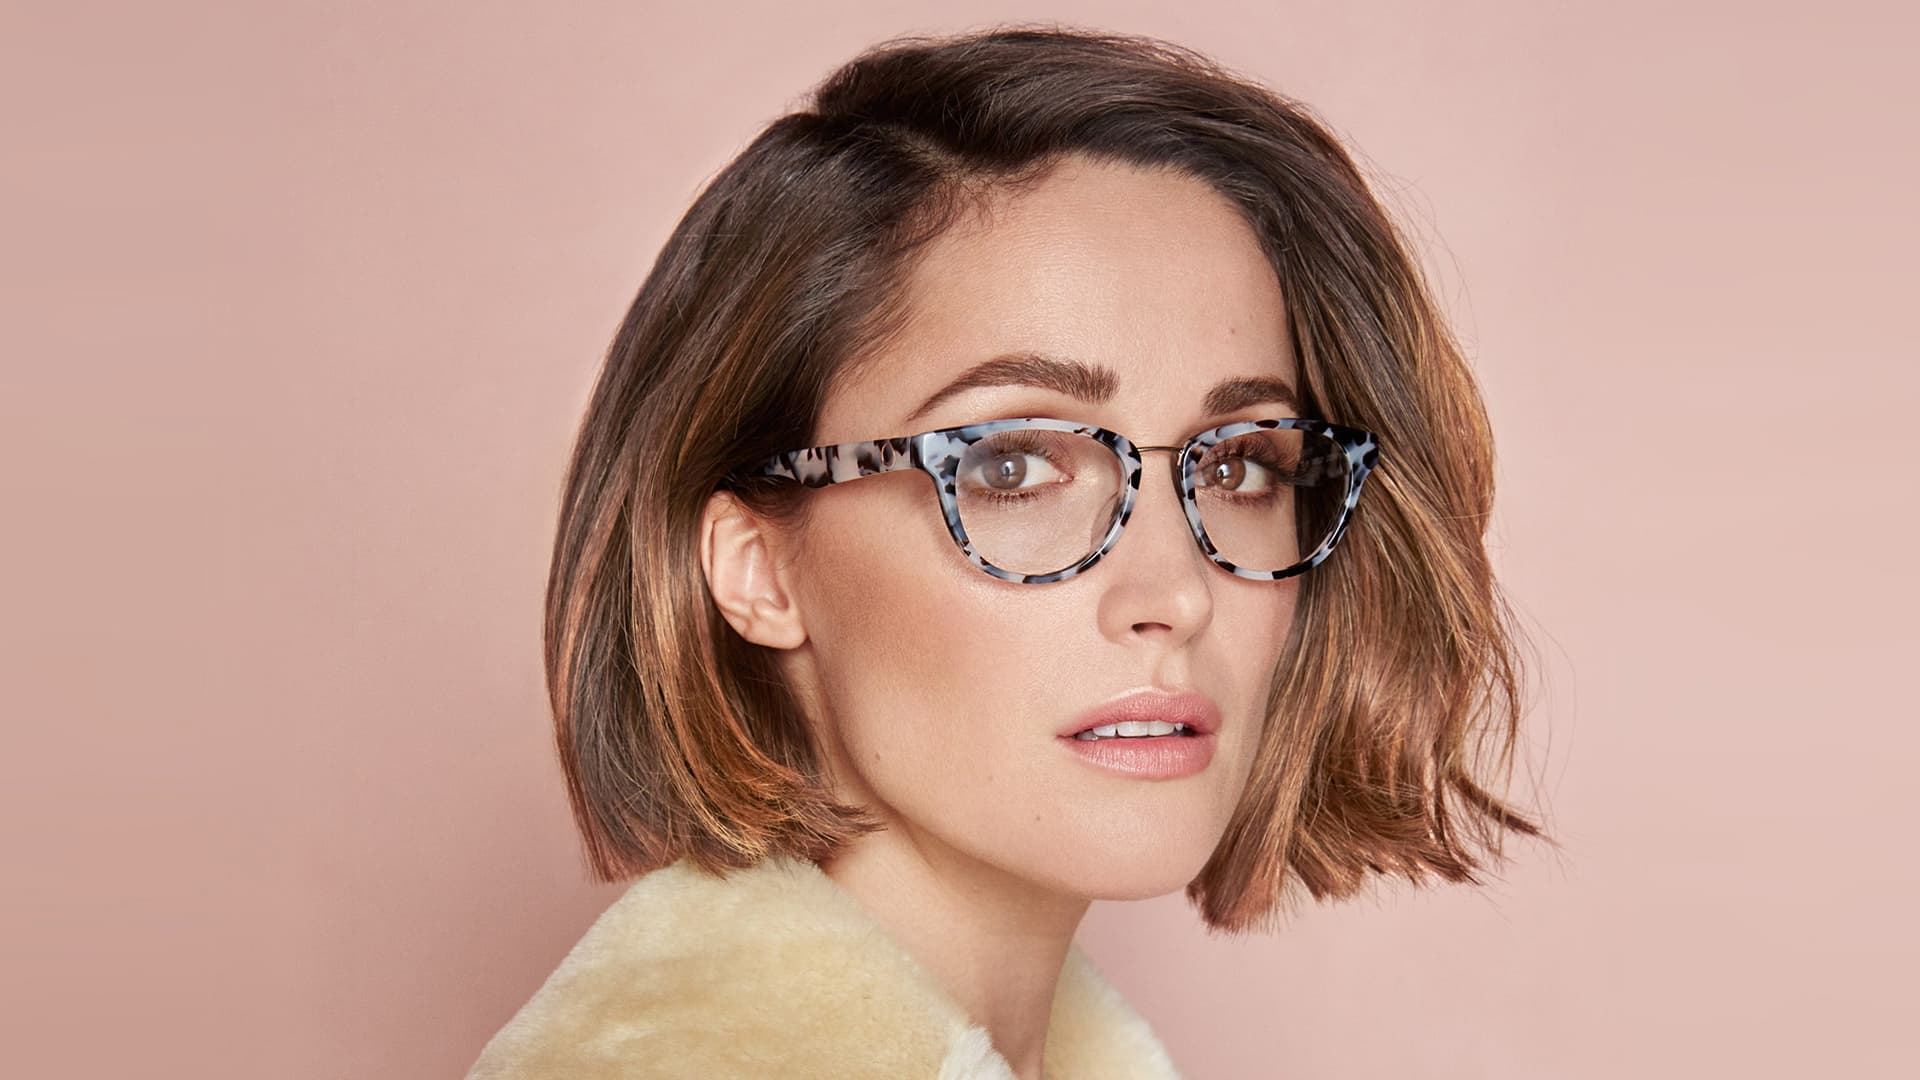 1920x1080 - Rose Byrne Wallpapers 18